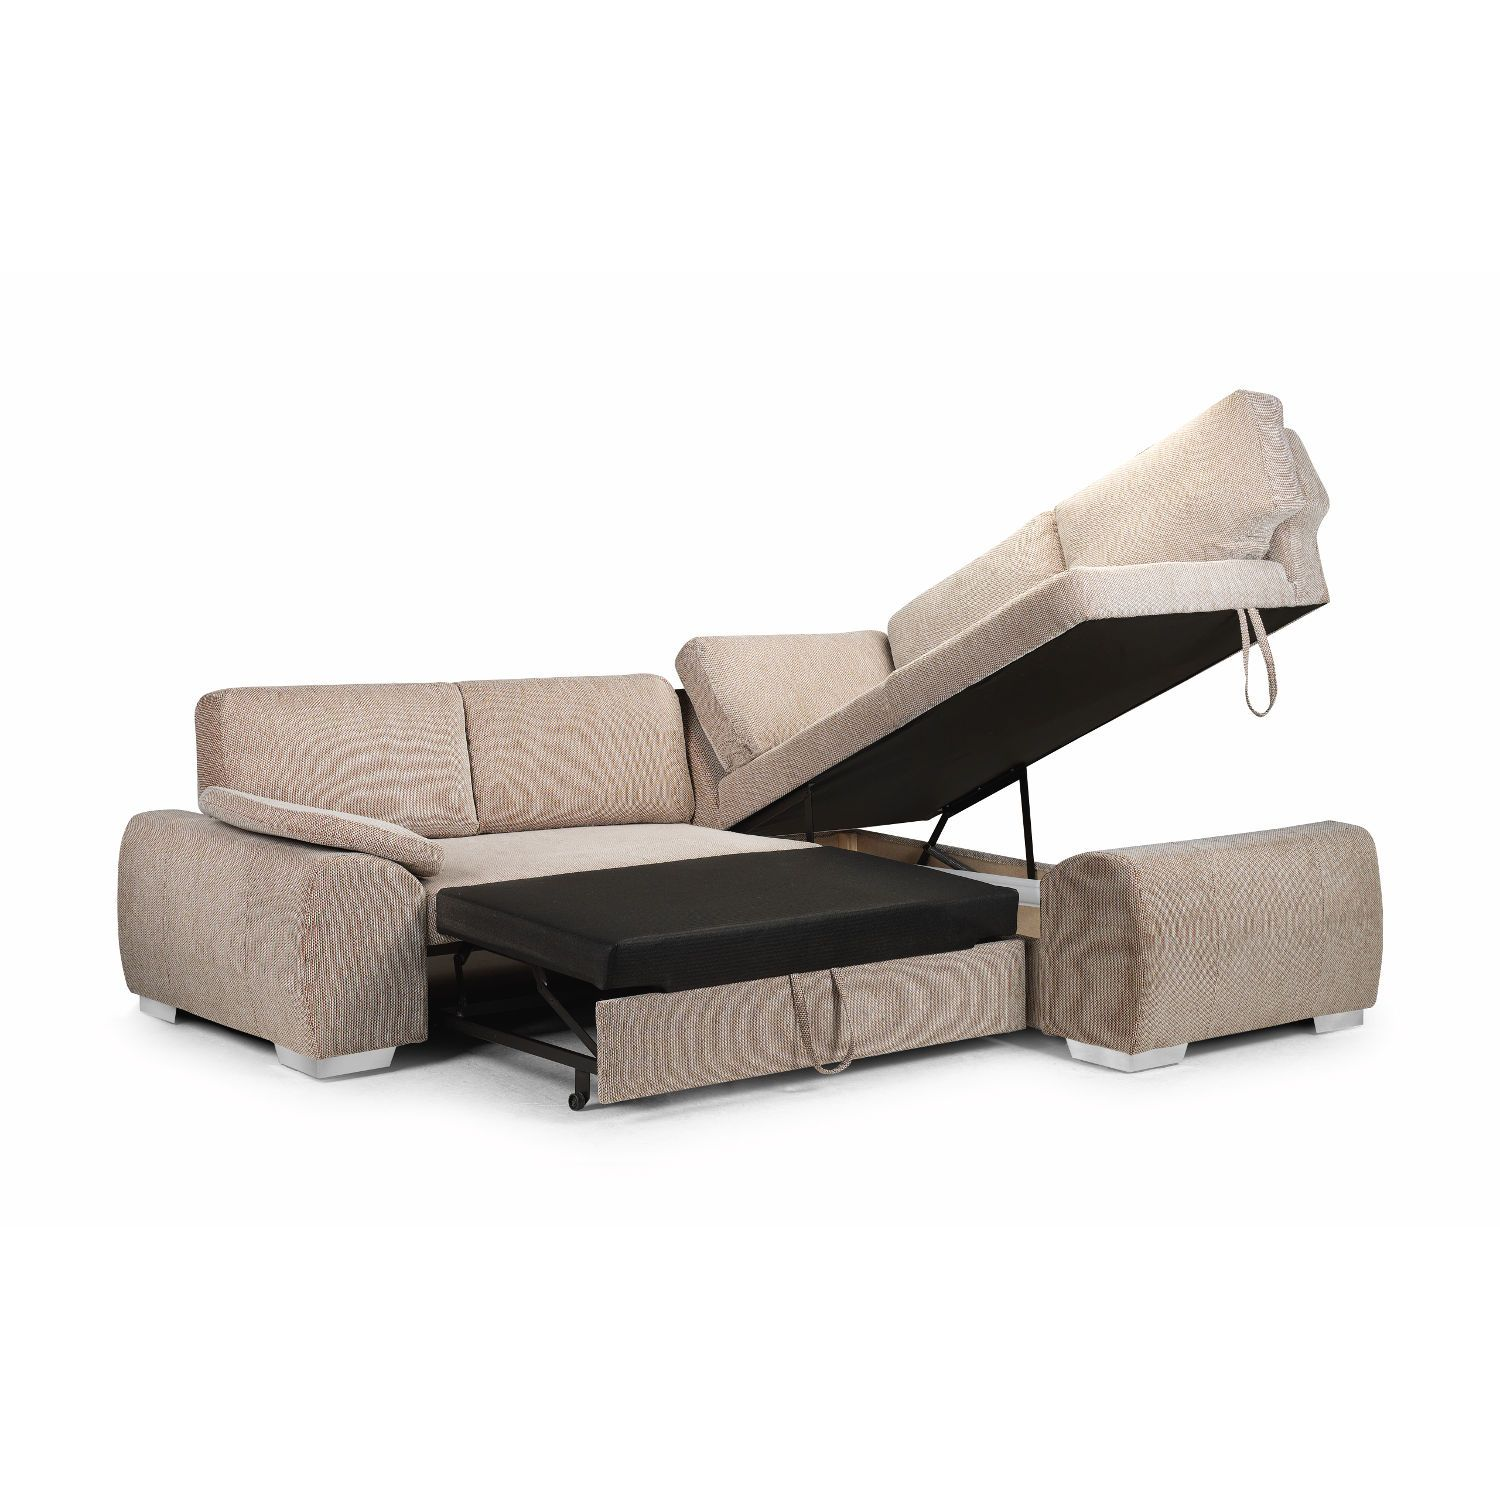 Corner Sofa Beds With Storage A Complete Package For Living Space Decoration Corner Sofa Bed With Storage Sofa Bed With Storage Corner Sofa Bed